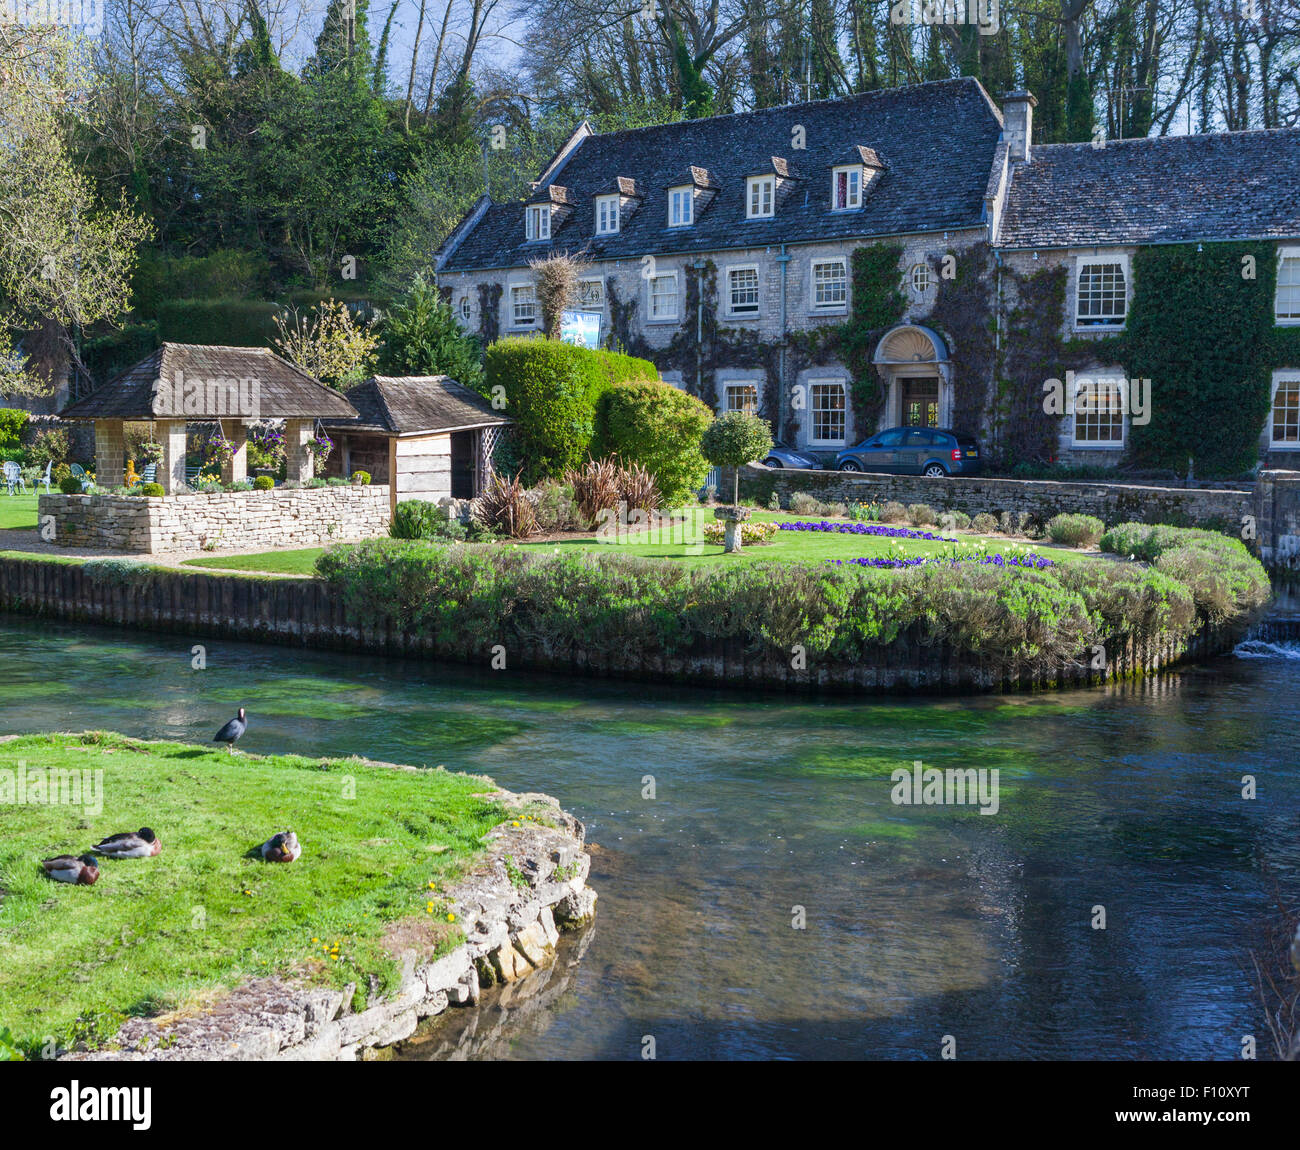 Swan Hotel on the River Coin in Bibury, the Cotswolds, Gloucestershire, England, UK - Stock Image